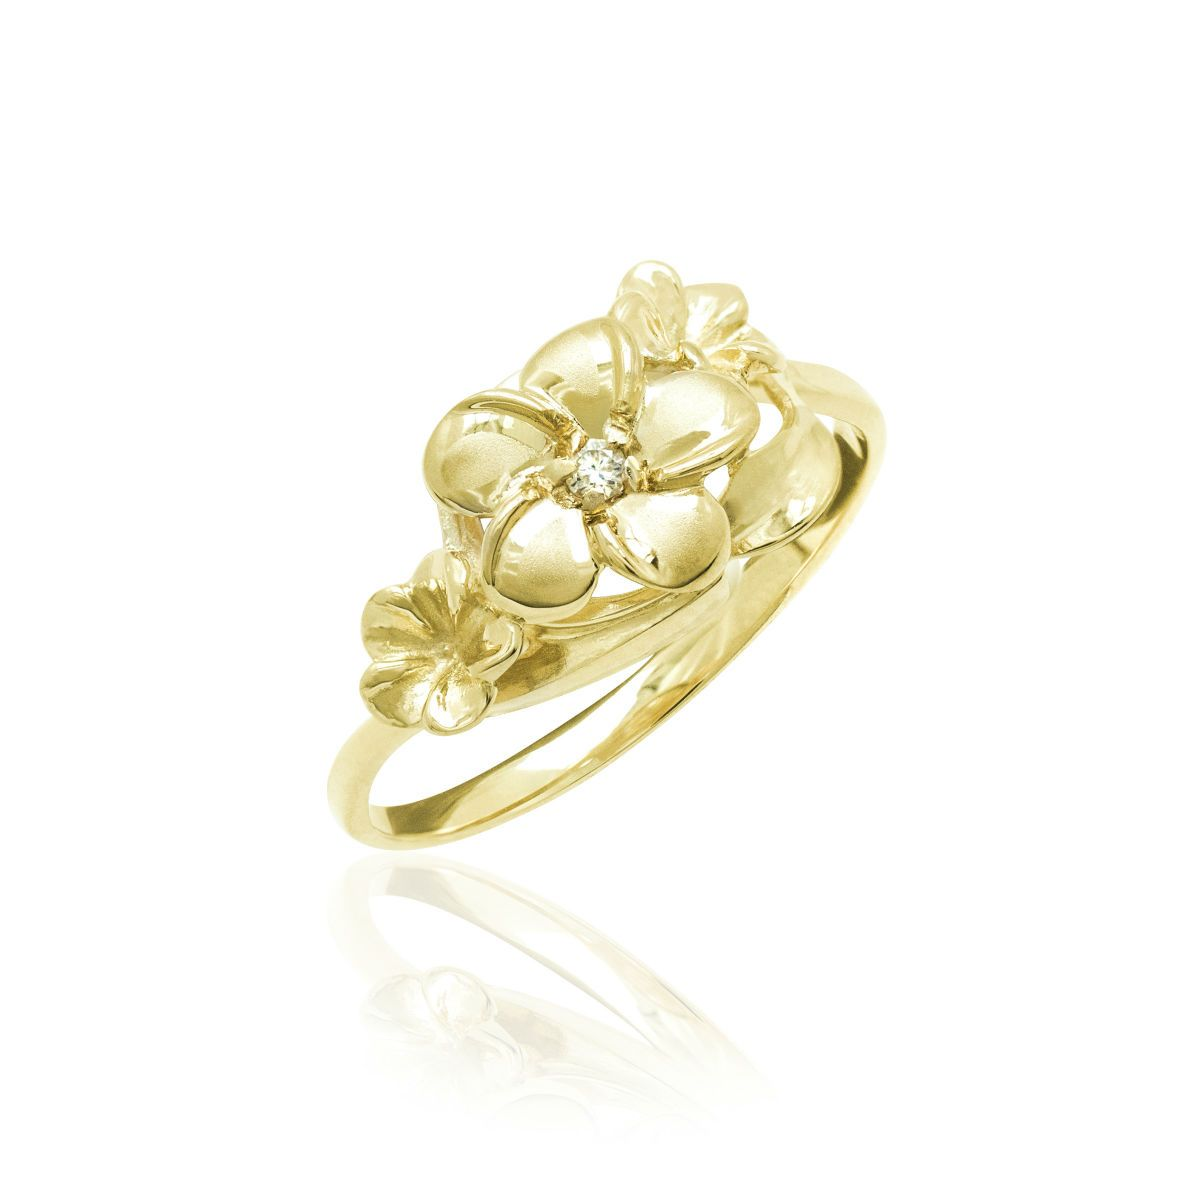 Queen Plumeria Three Flower Ring with Diamond